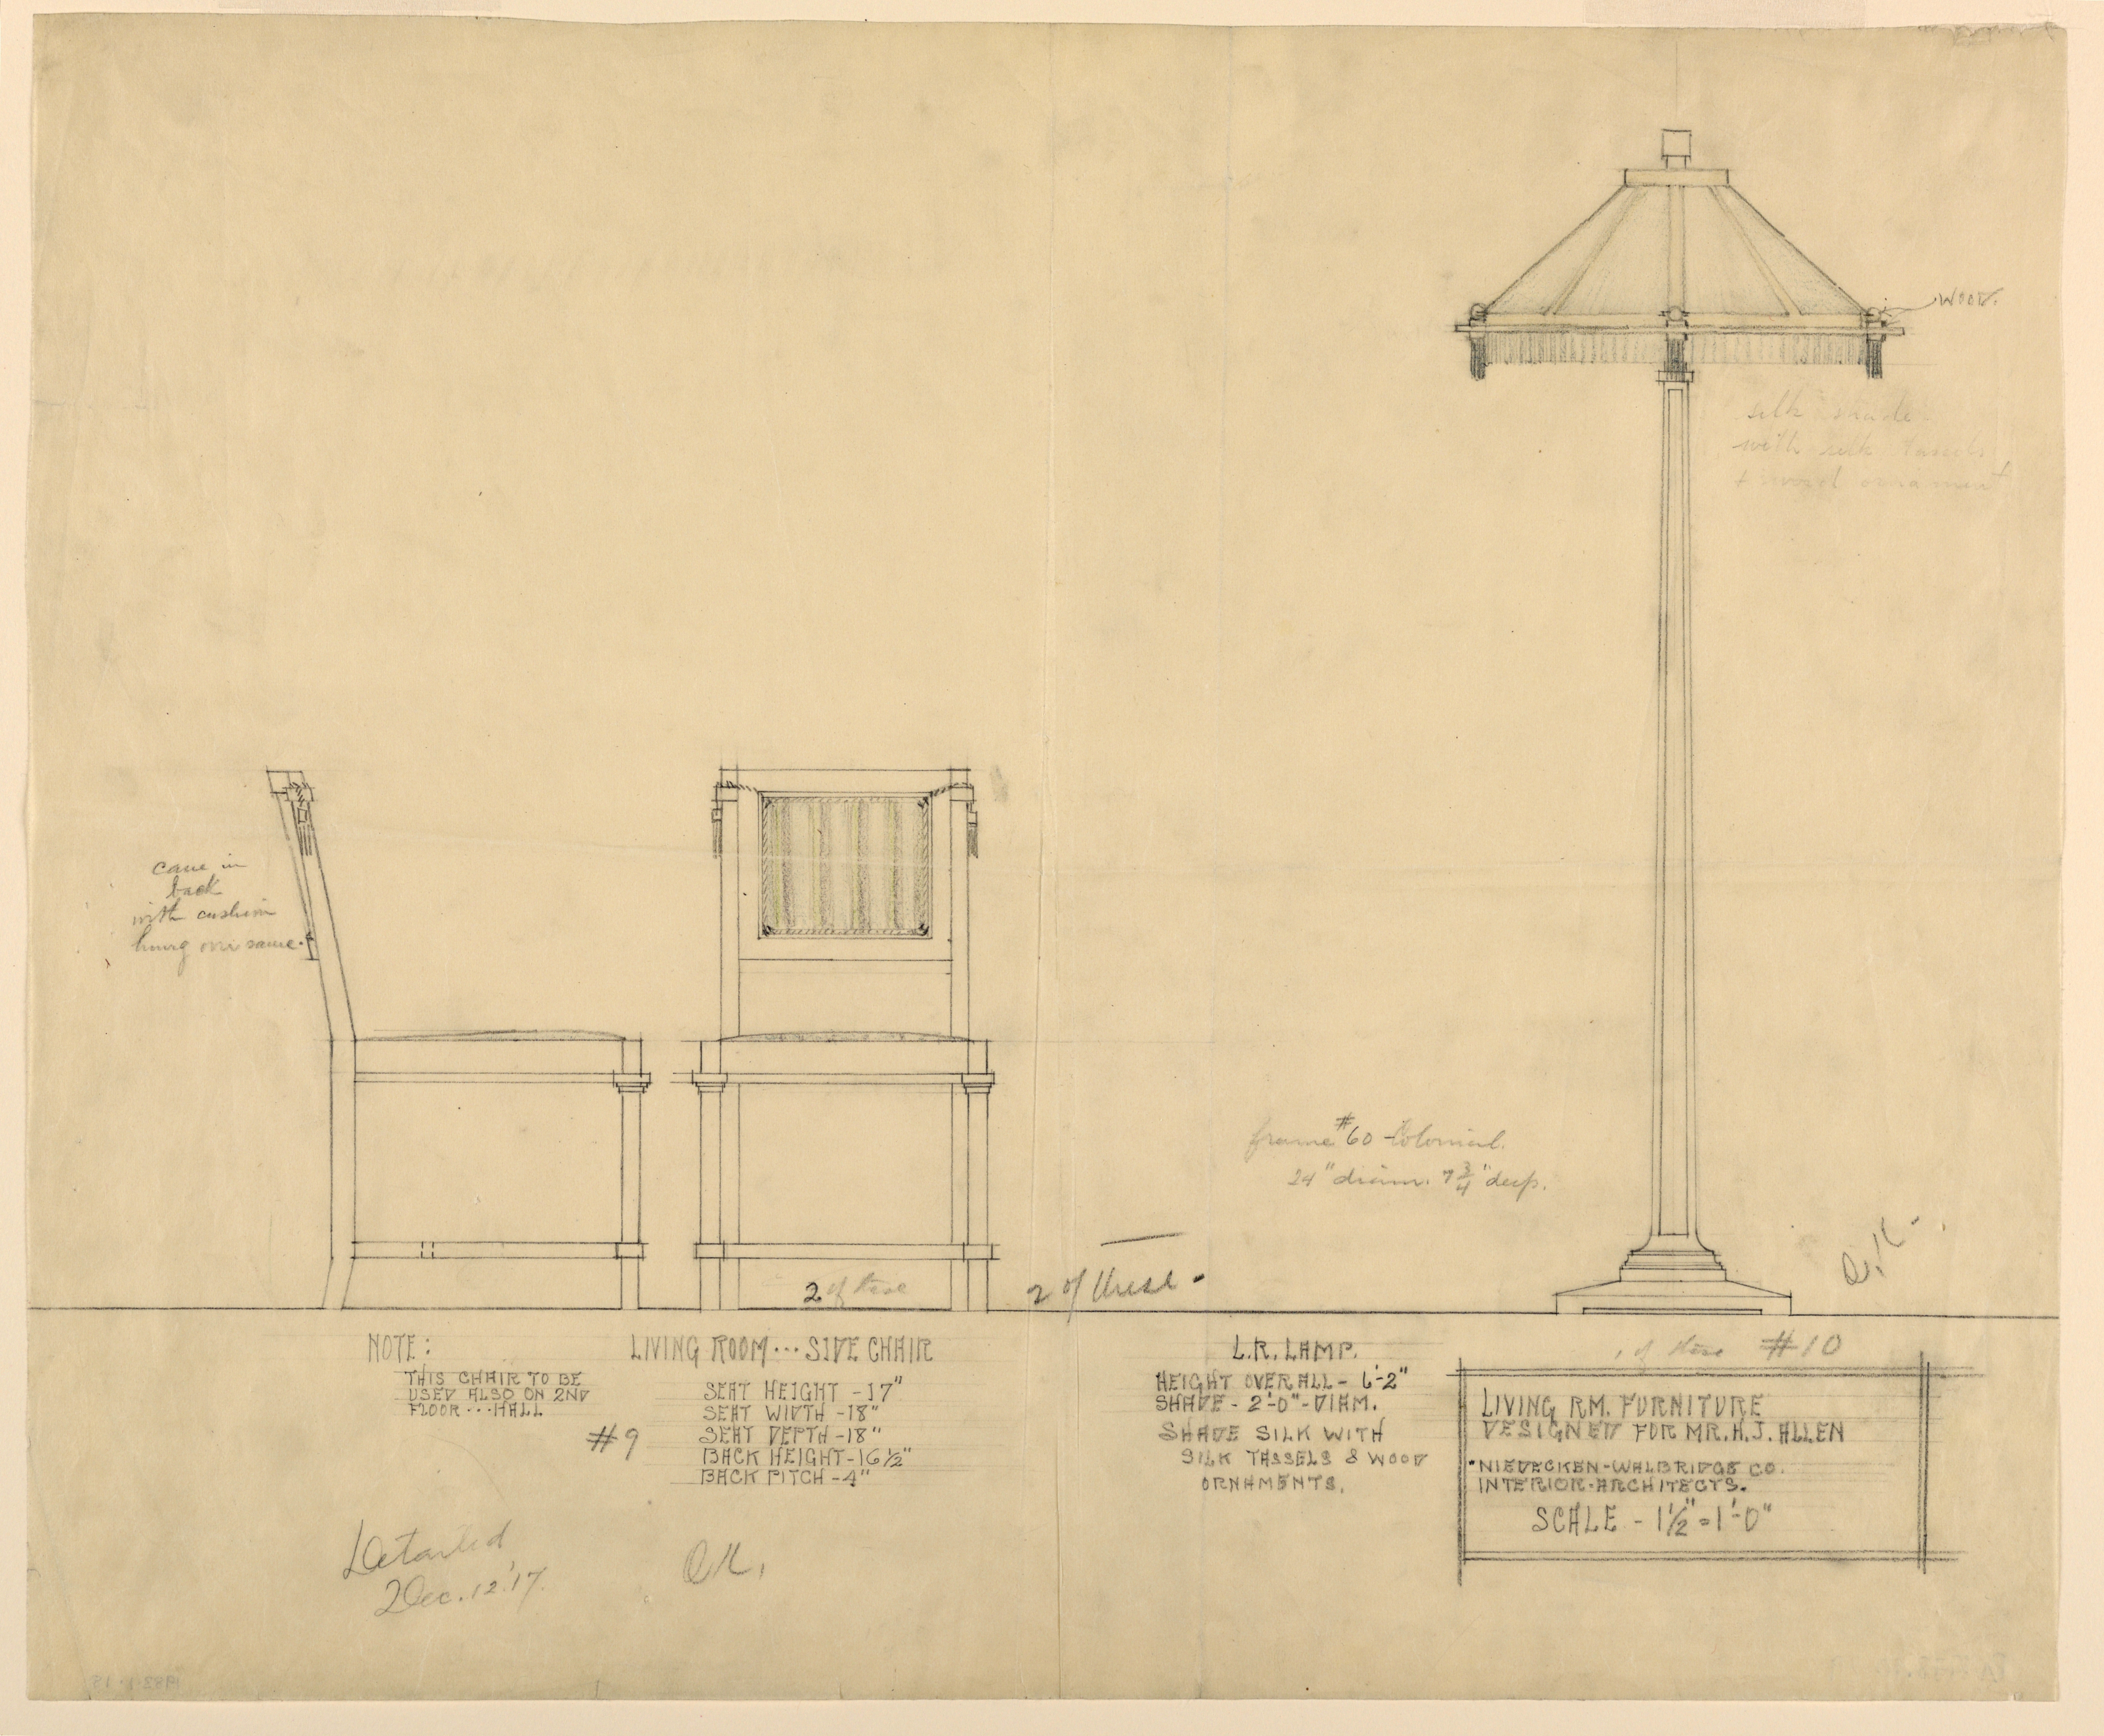 File:Drawing, Living Room Furniture, Henry J. Allen Residence, Wichita,